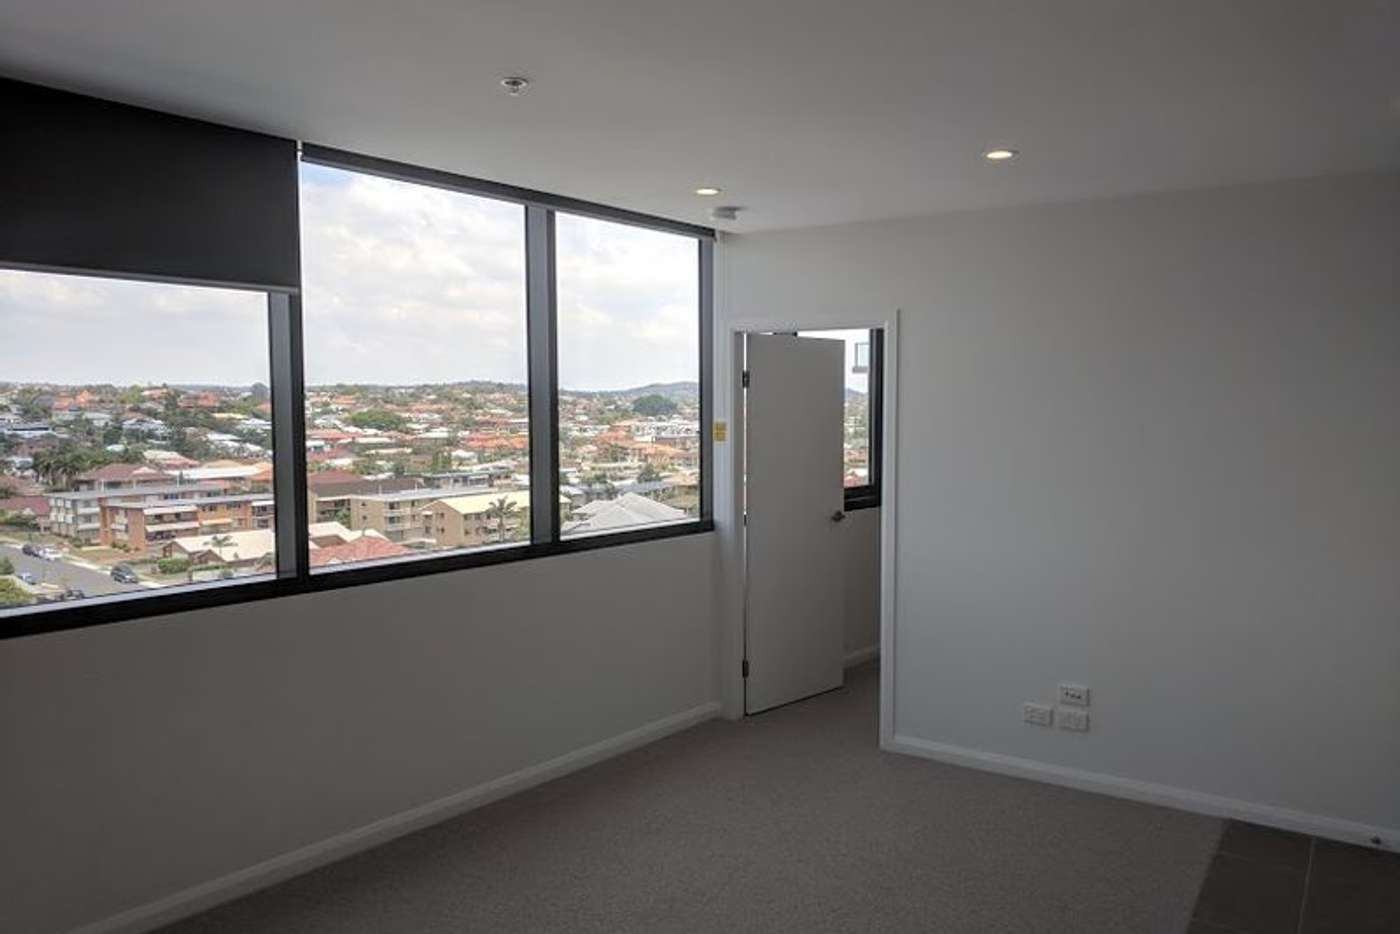 Fifth view of Homely apartment listing, 10607/300 Old Cleveland Road, Coorparoo QLD 4151